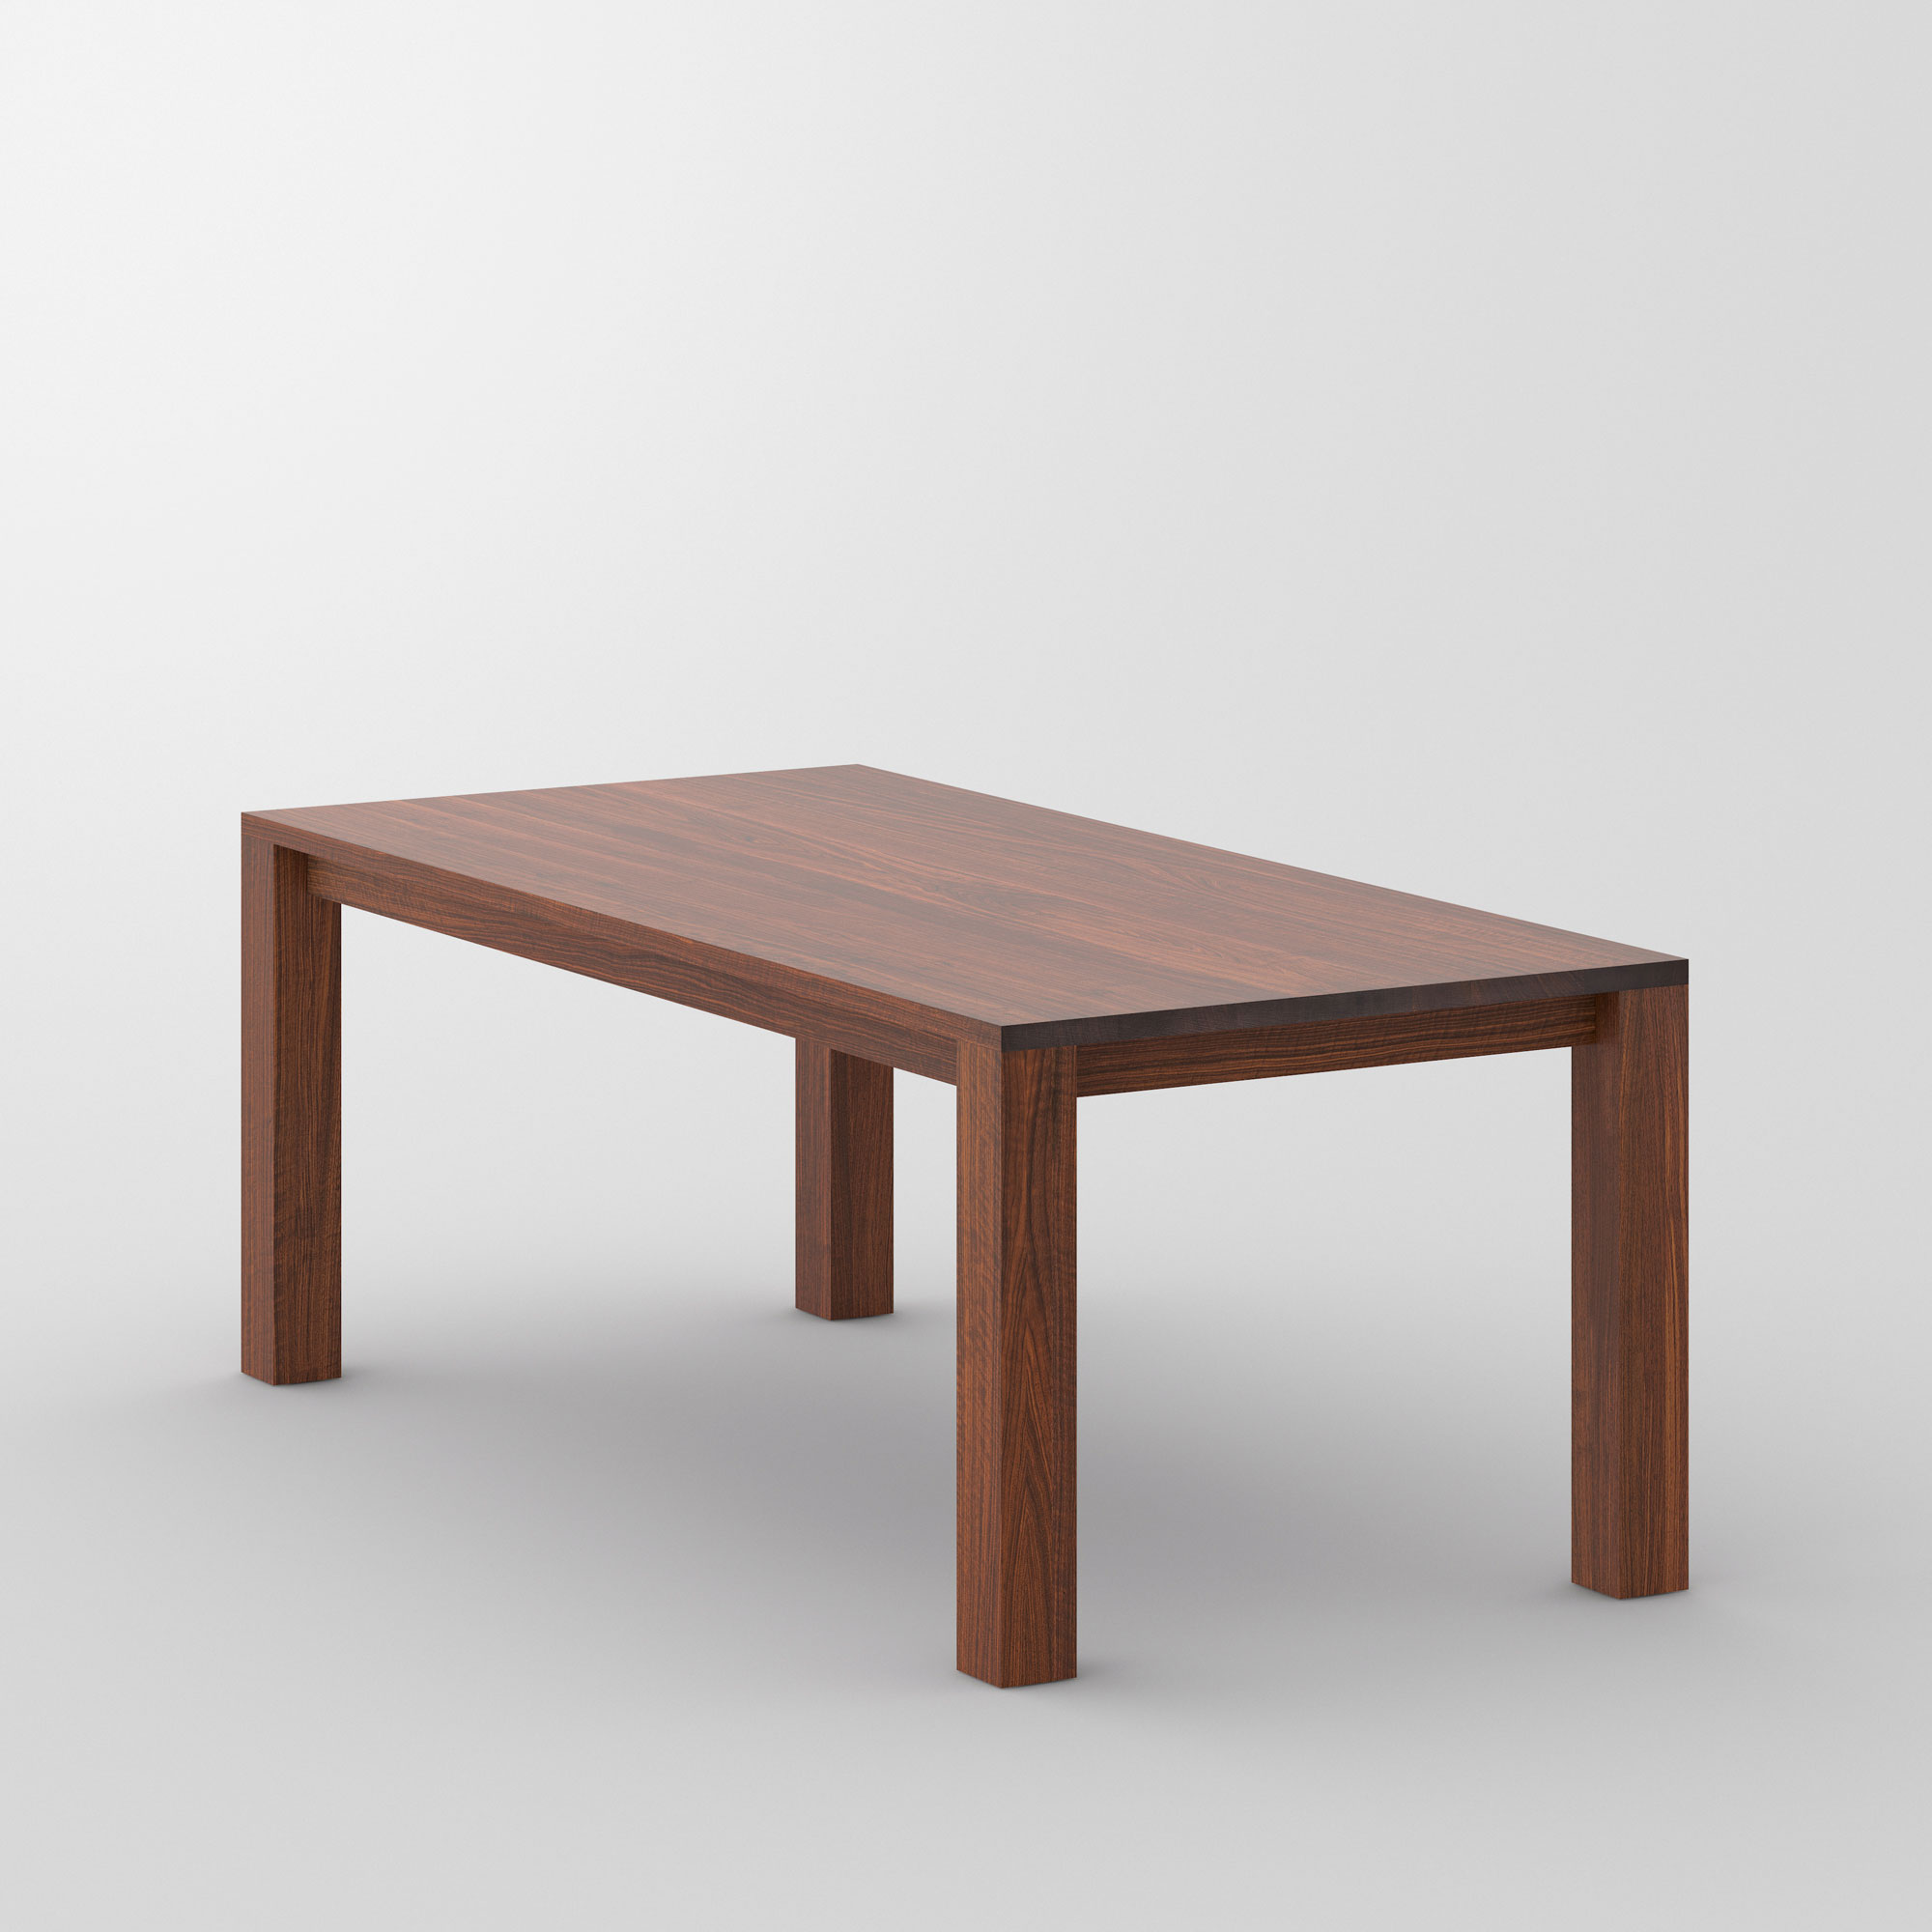 Dining Table Rustic CUBUS 3 B10X10 cam3 custom made in solid wood by vitamin design